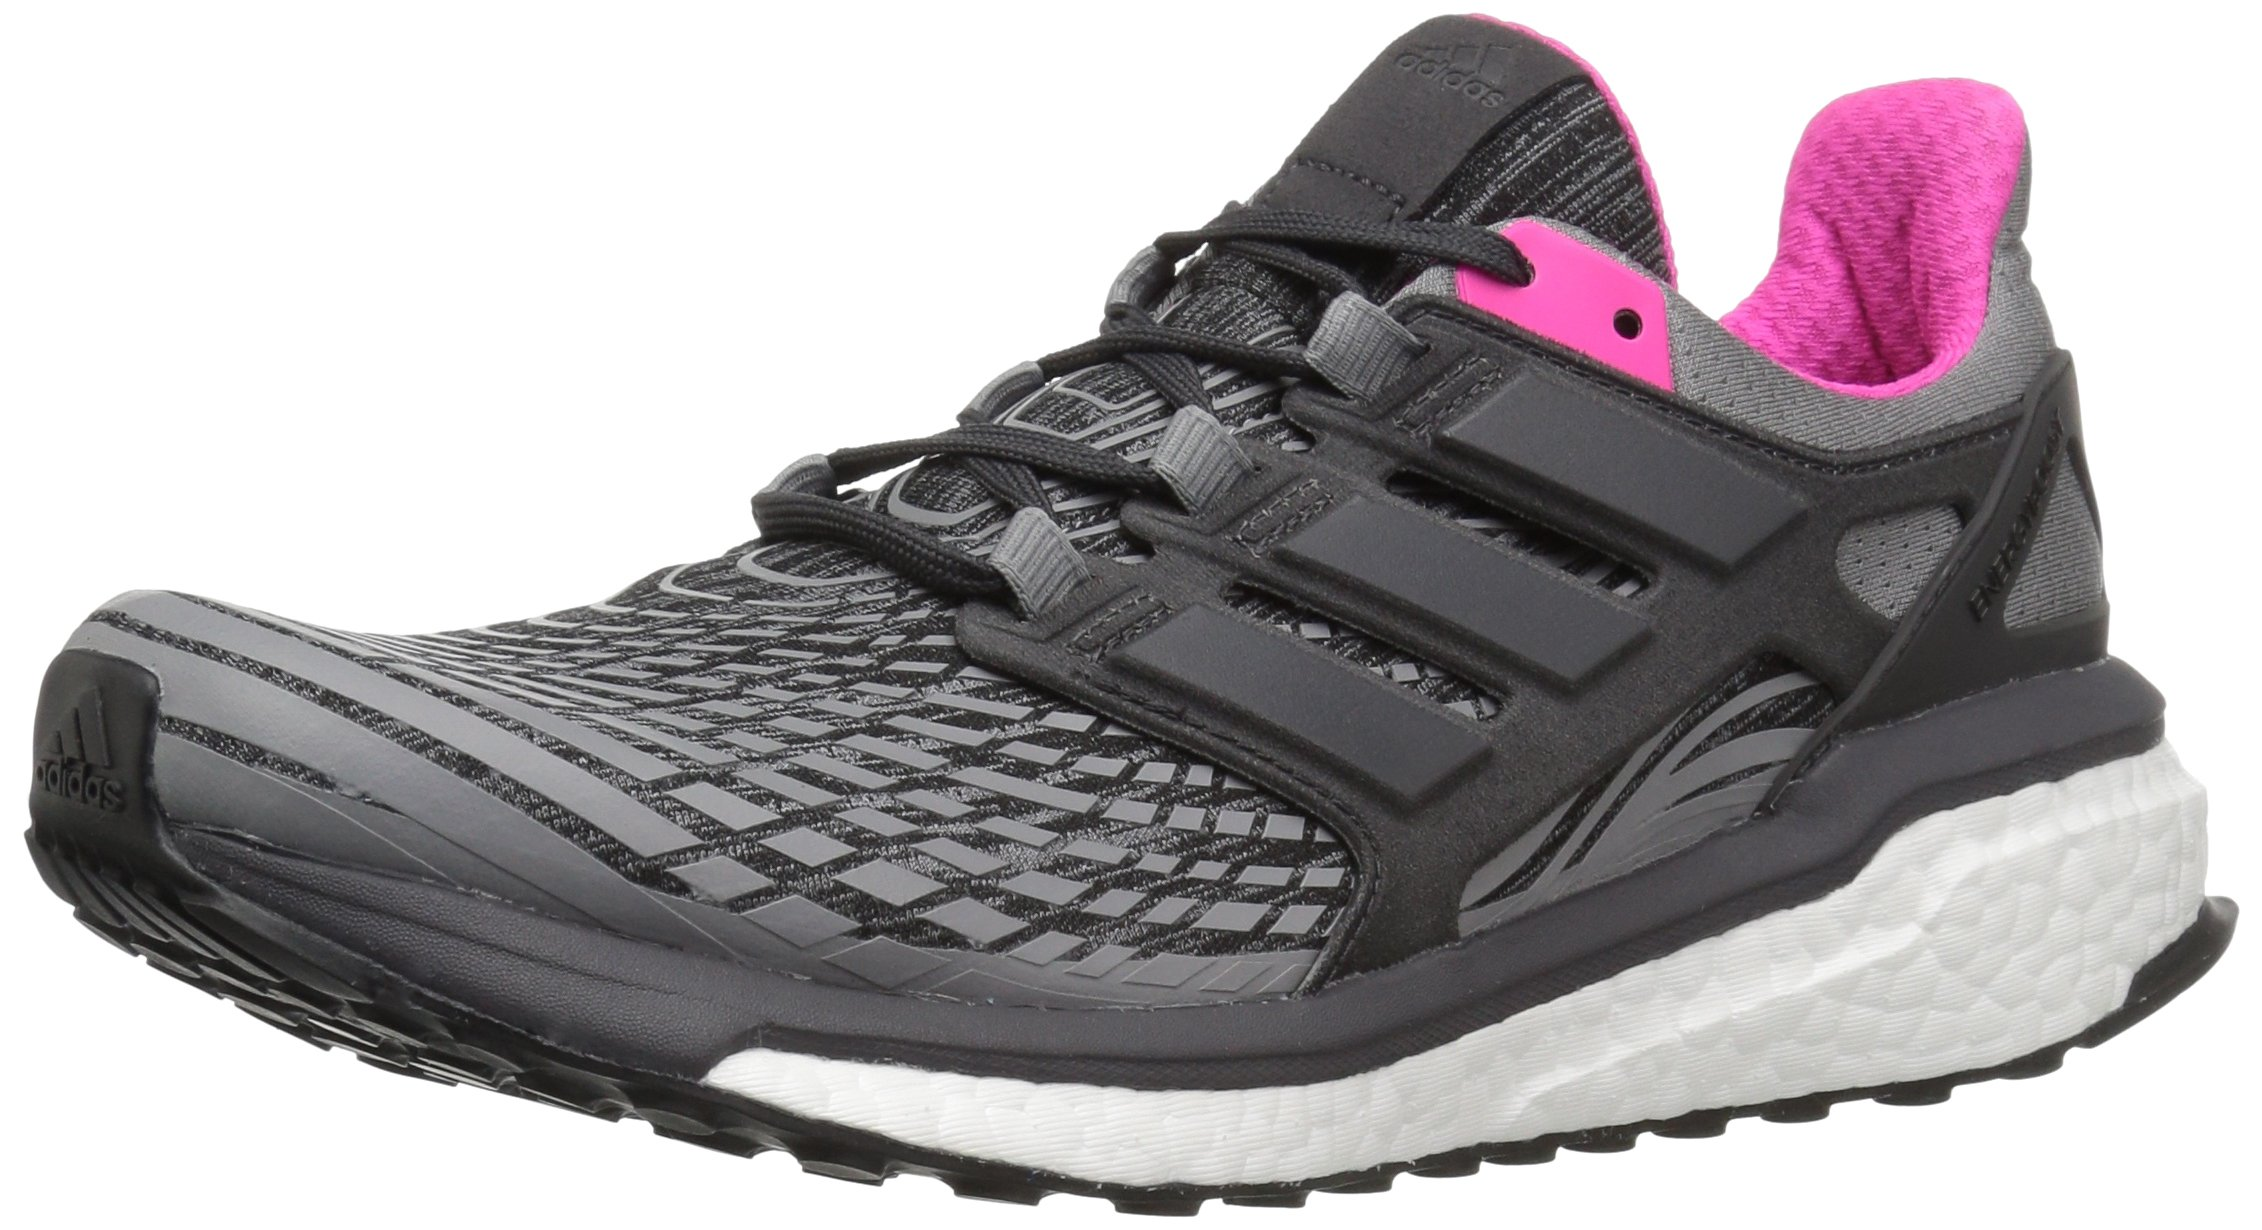 81d9VQSHWDL - adidas Womens Energy Boost Fabric Low Top Lace Up Running Sneaker